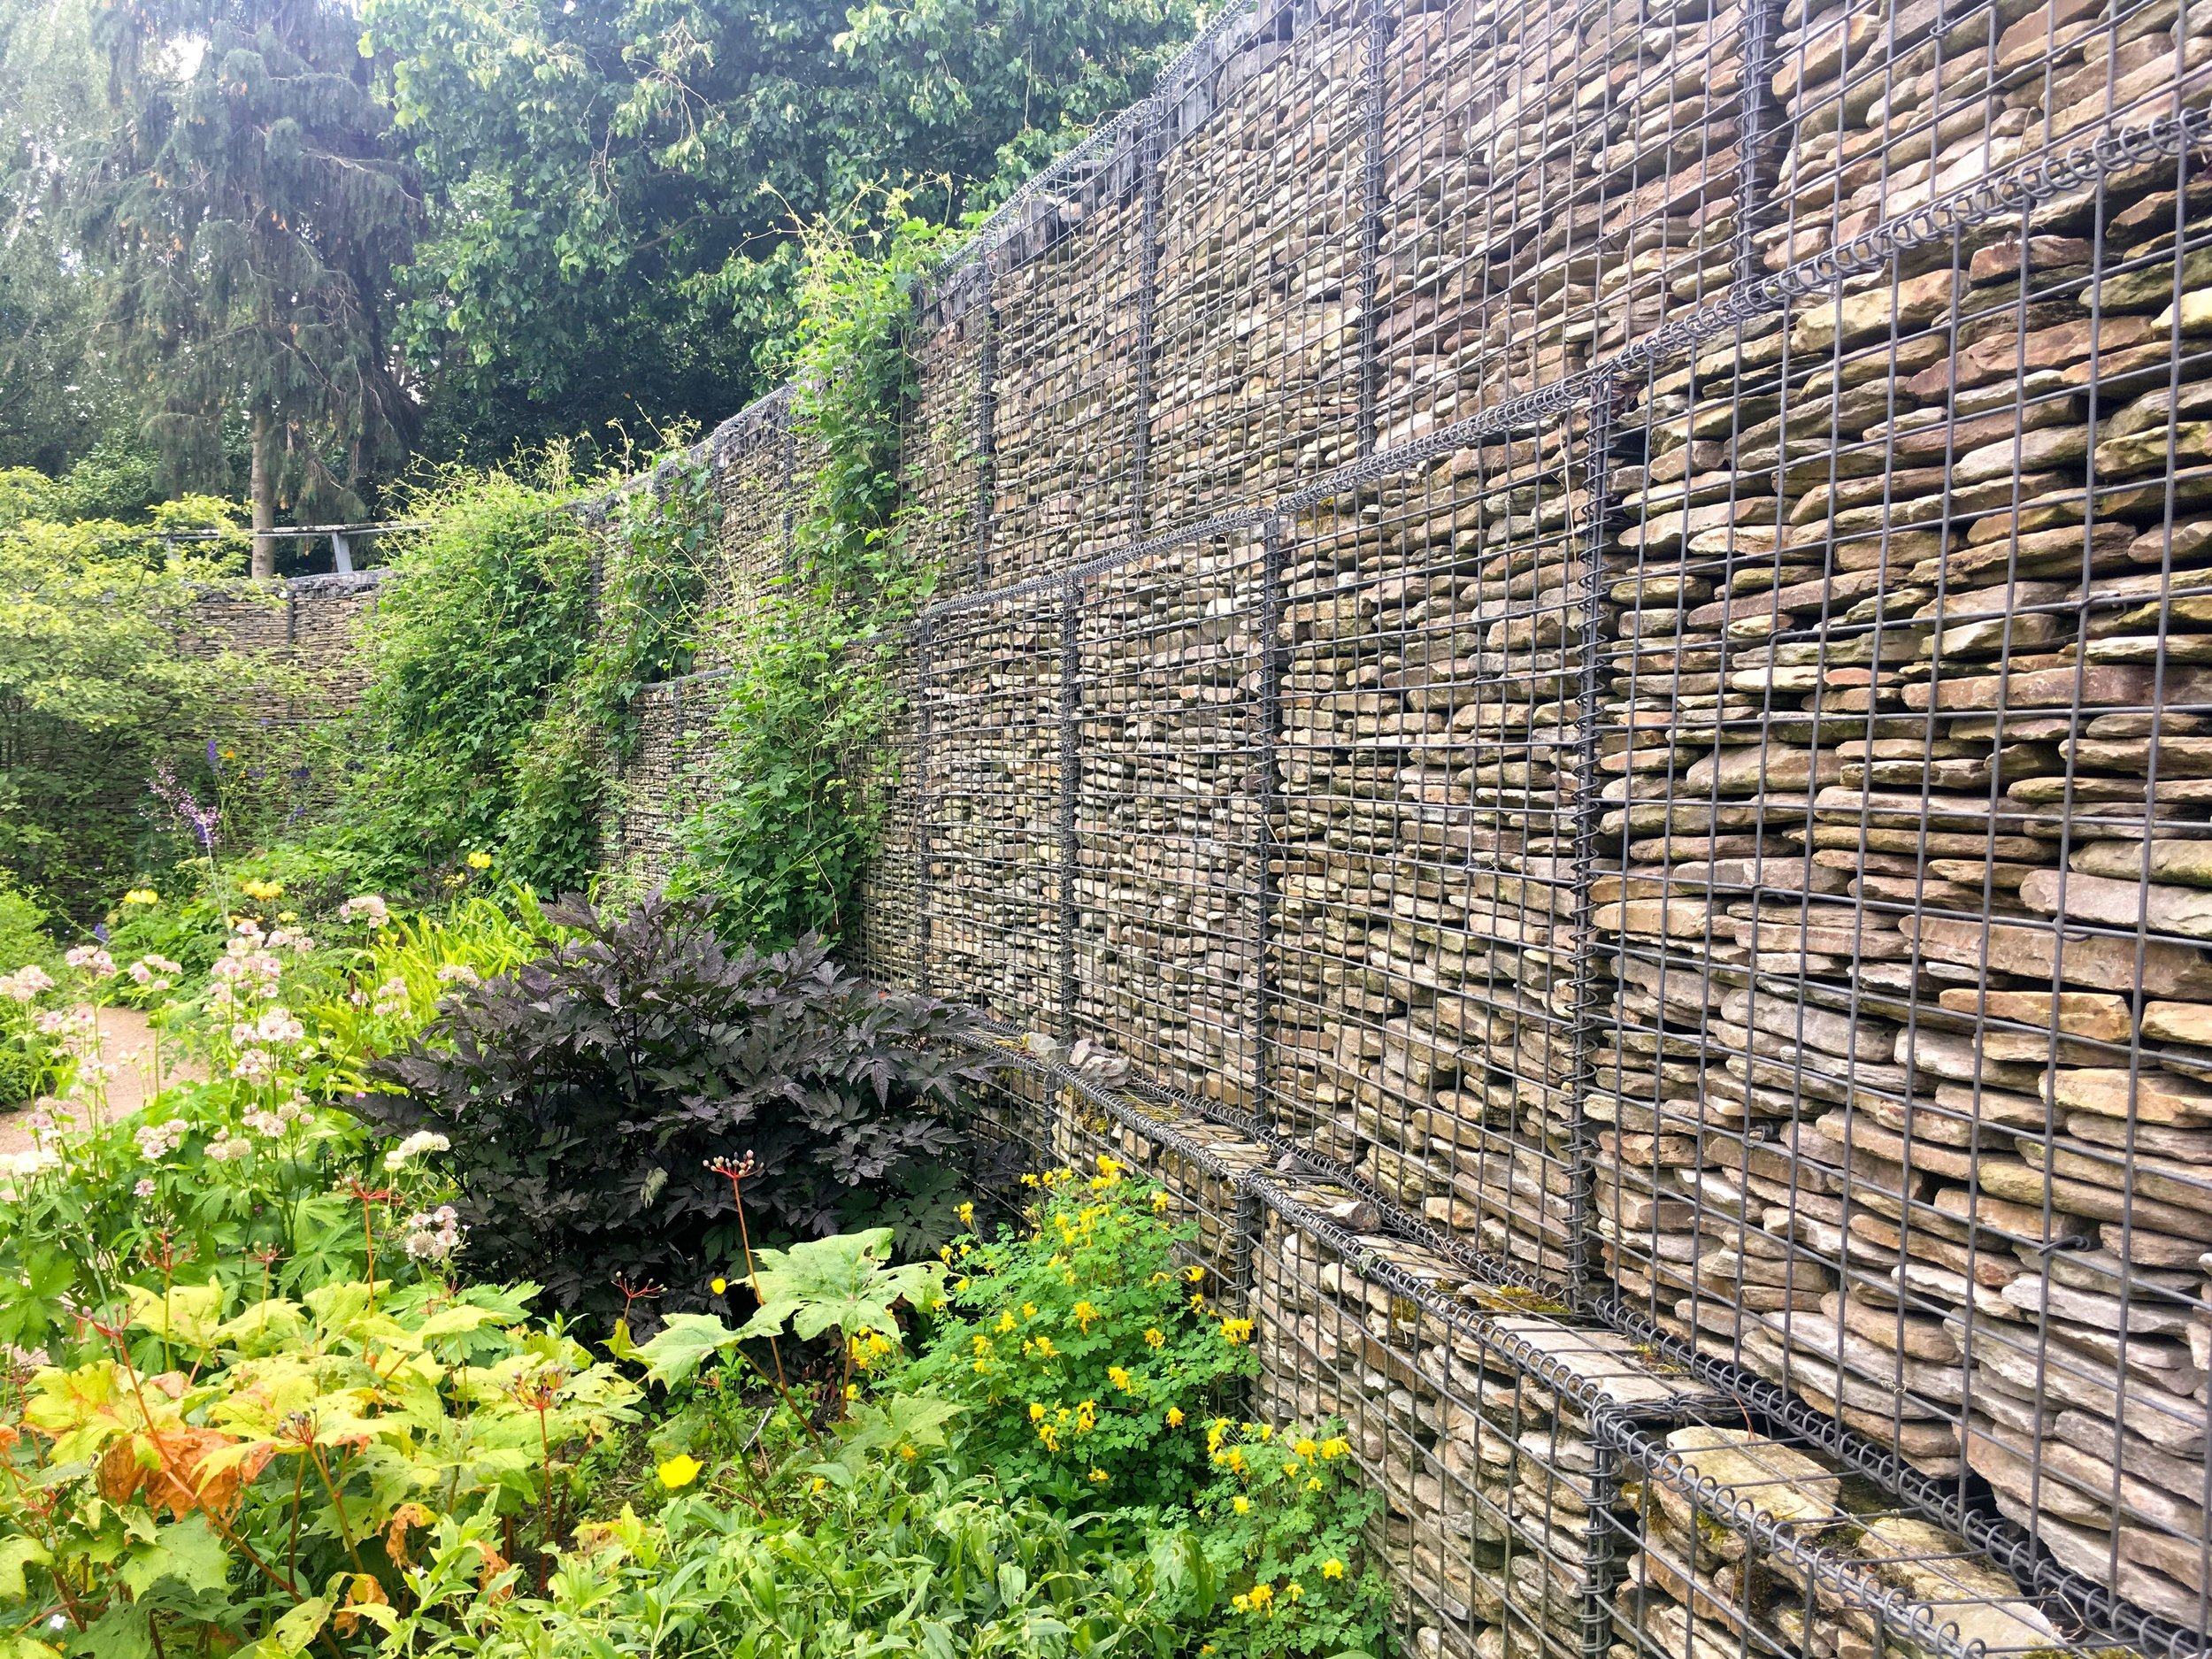 PLANTS WERE HAPPILY CLAMBERING OVER THE GABION WALL